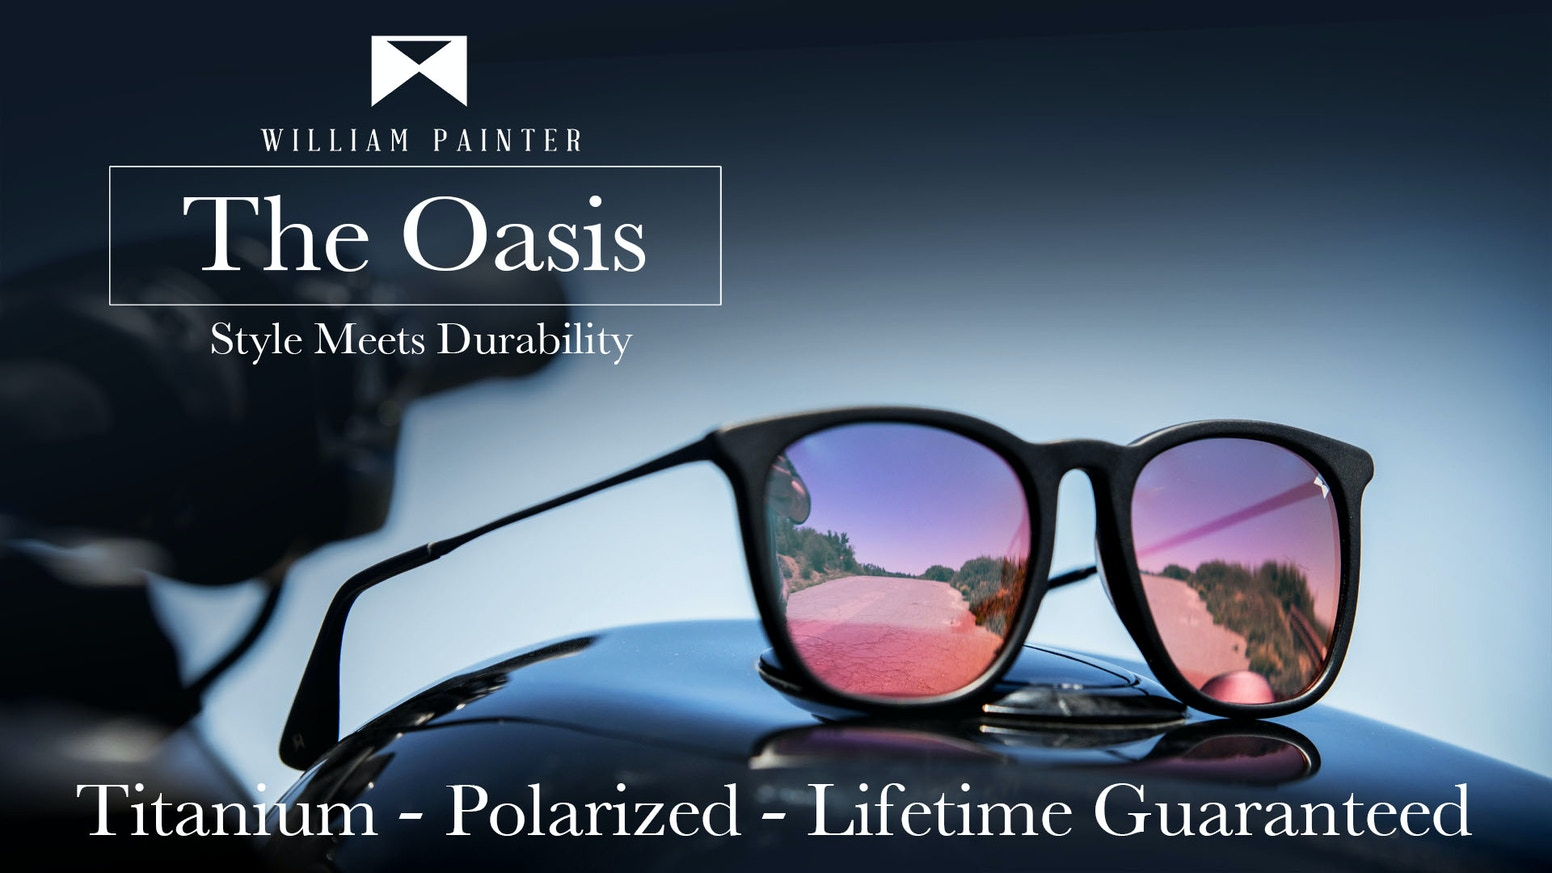 William Painter's The Oasis - Aerospace Grade Titanium Frame, Next-Gen Polarized Lenses, all backed by our Lifetime Guarantee.